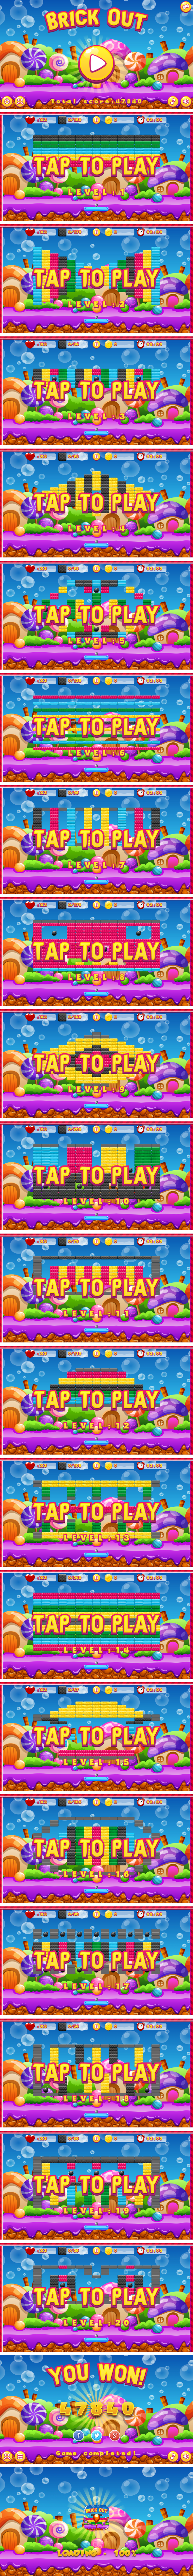 Brick Out - HTML5 Game, Mobile Version+AdMob!!! (Construct 3 | Construct 2 | Capx) - 3